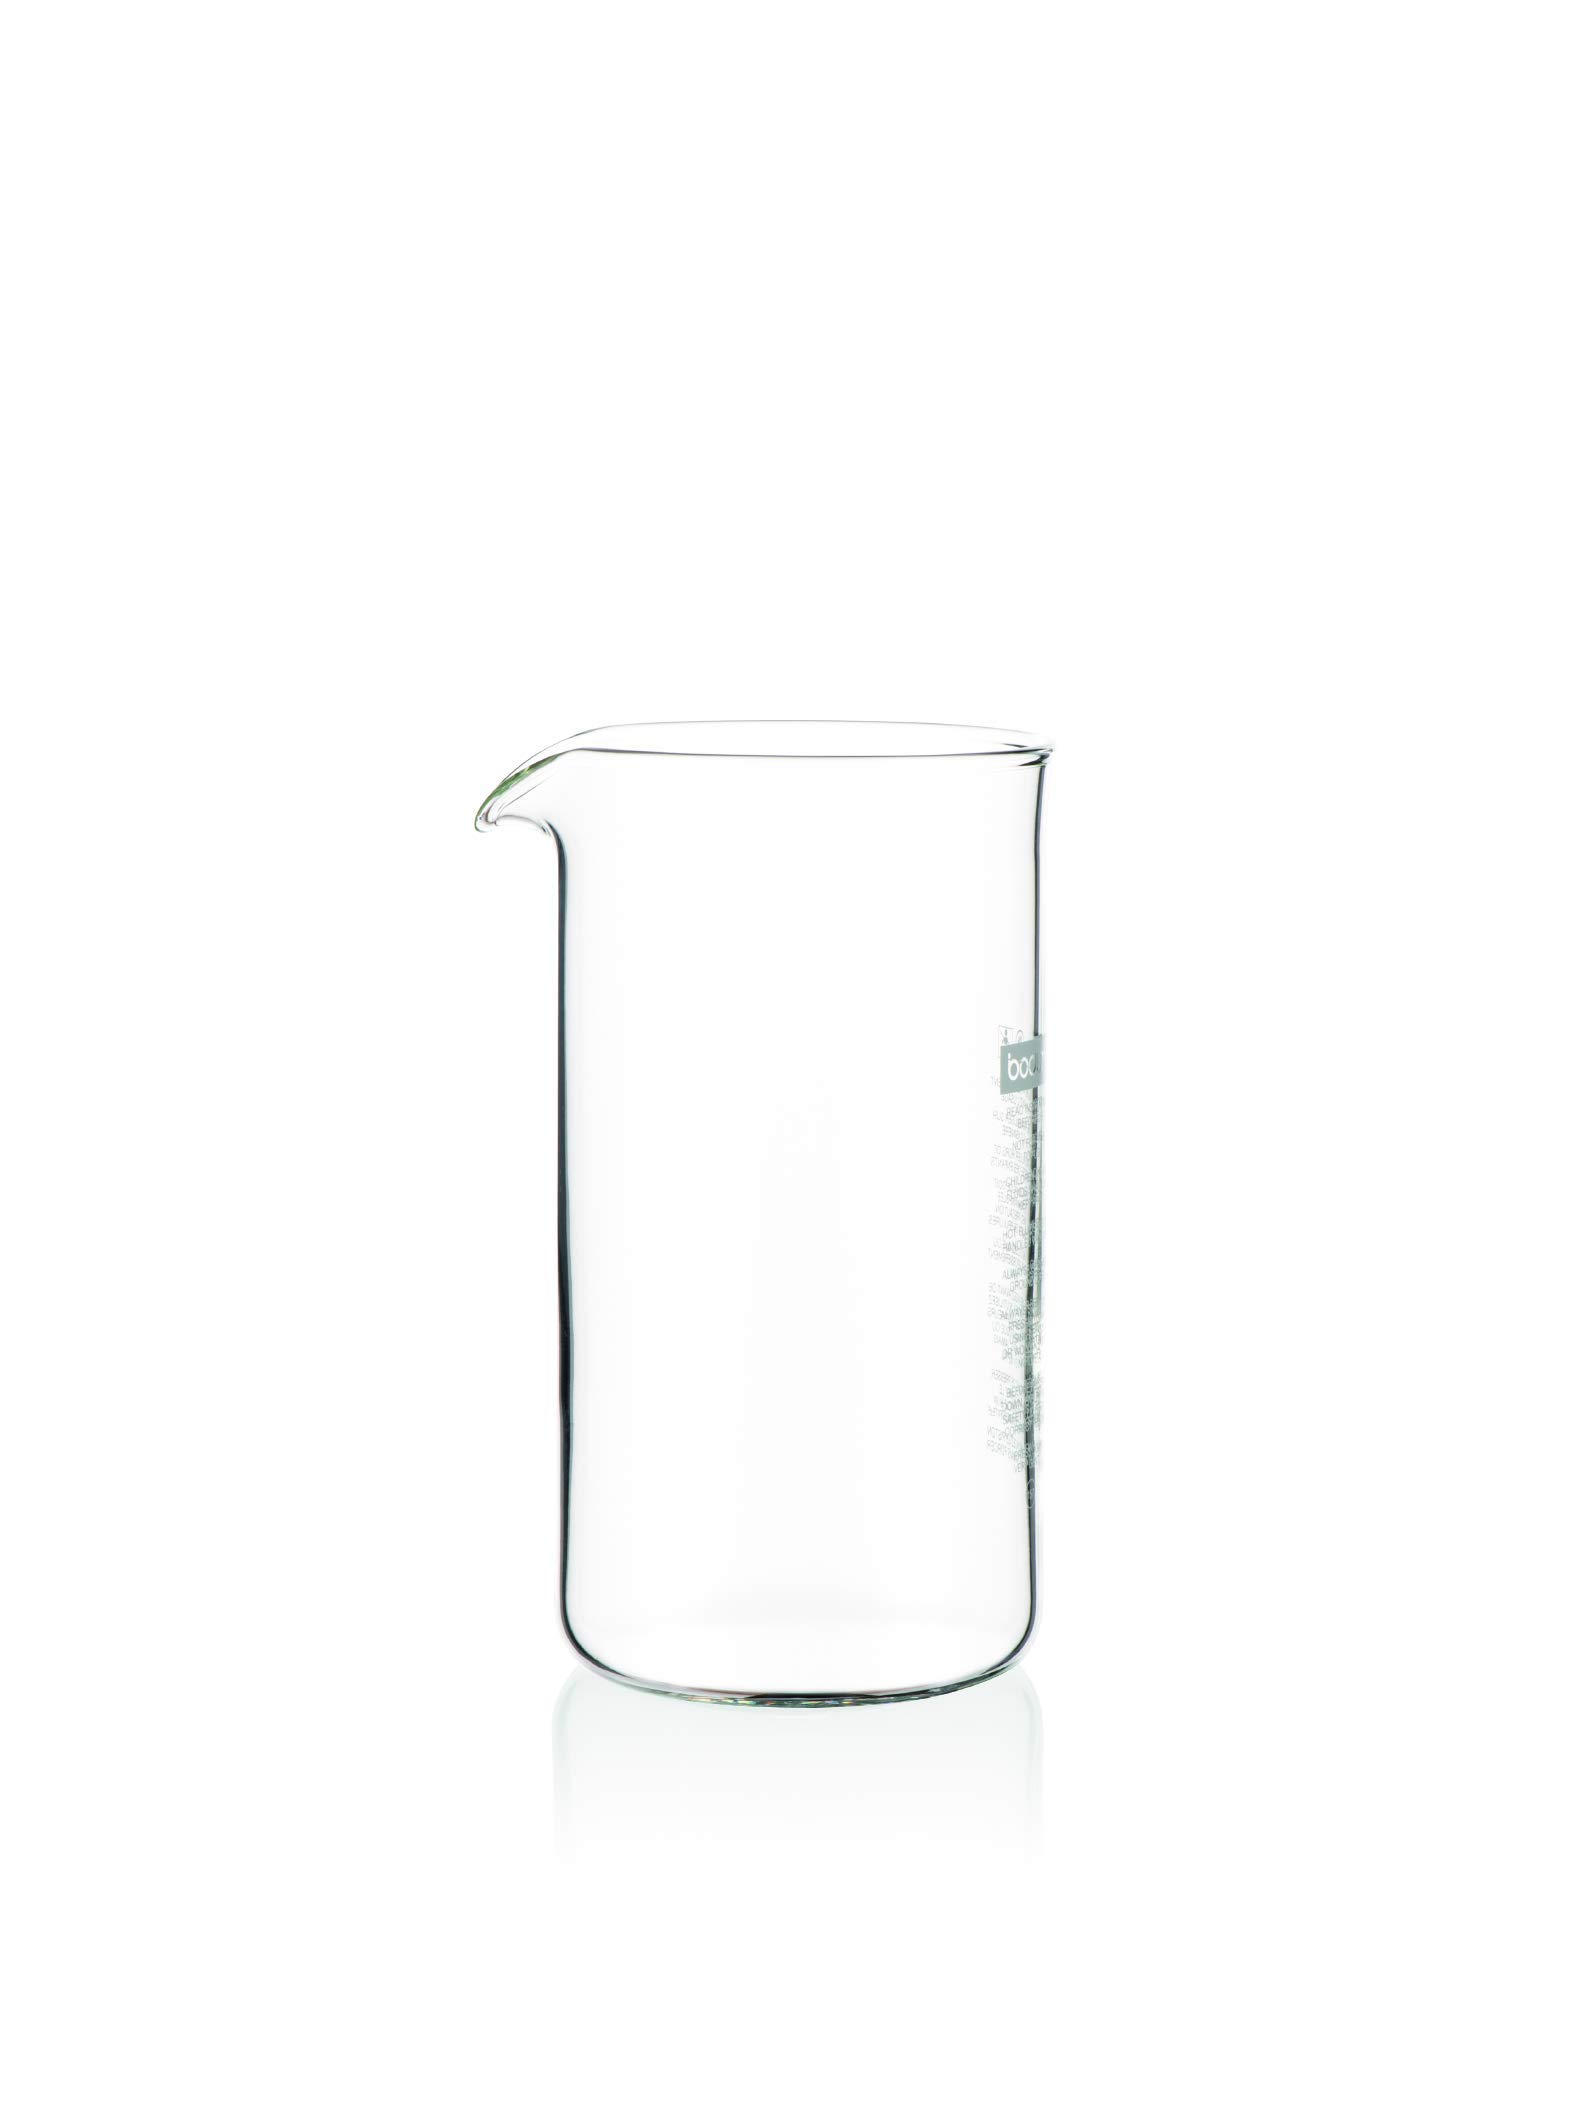 Bodum Spare Glass Carafe for French Press Coffee Maker, 0.35-Liter, 12-Ounce by Bodum